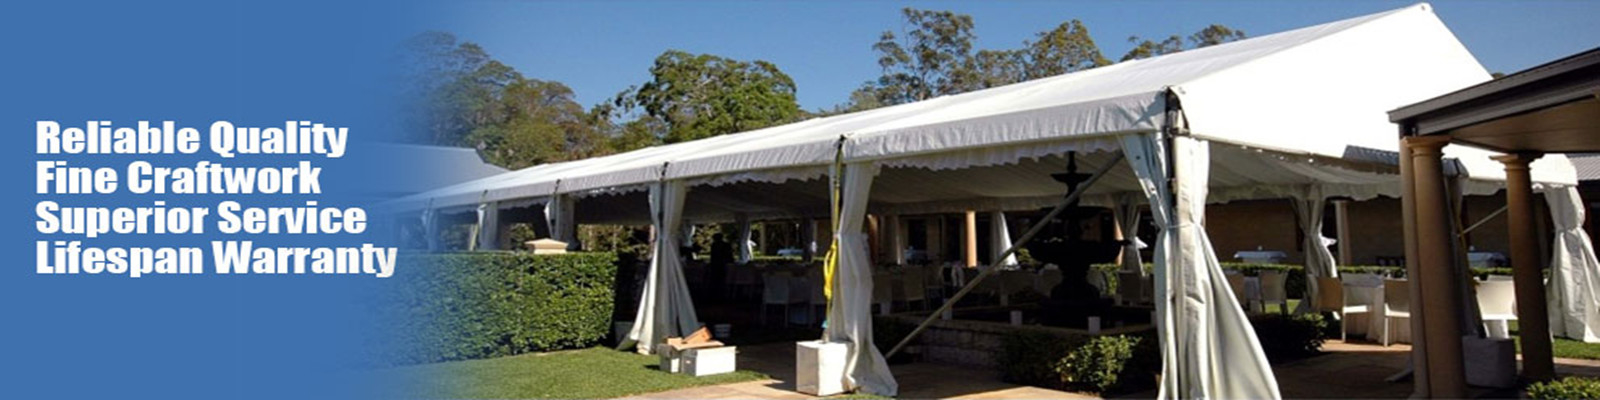 Barraca exterior do evento